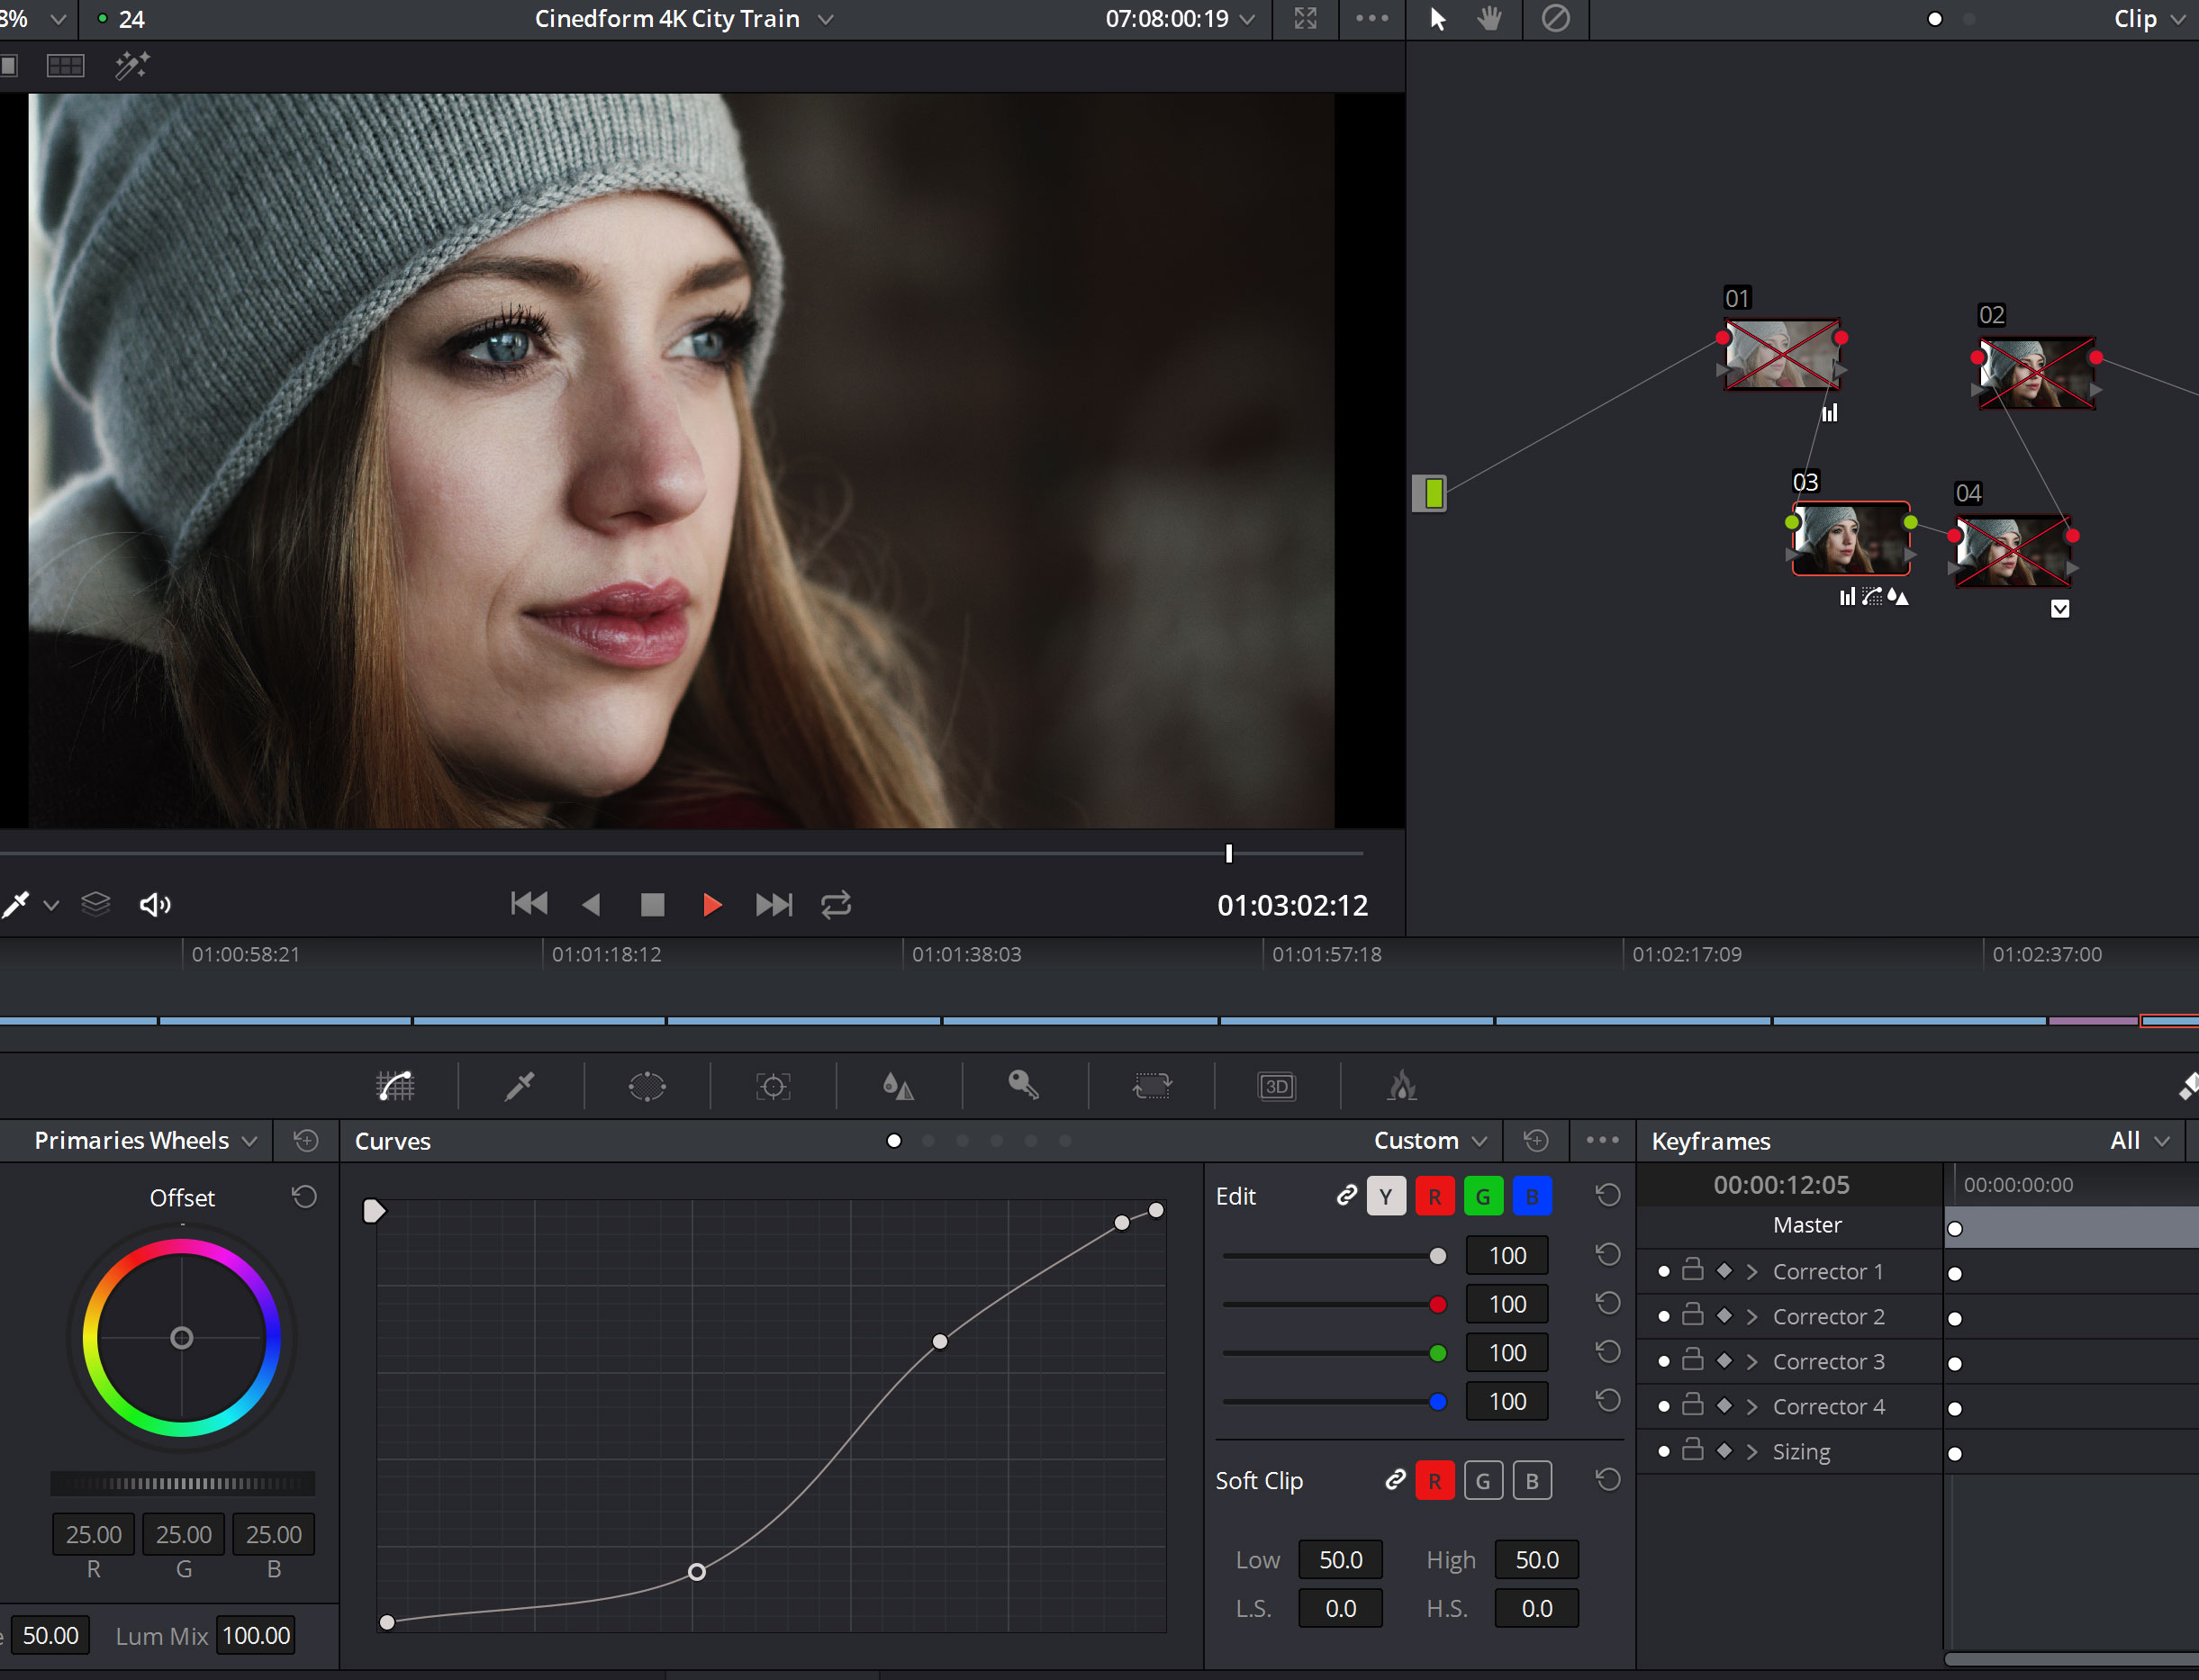 Blackmagic DaVinci Resolve 14.1 is available